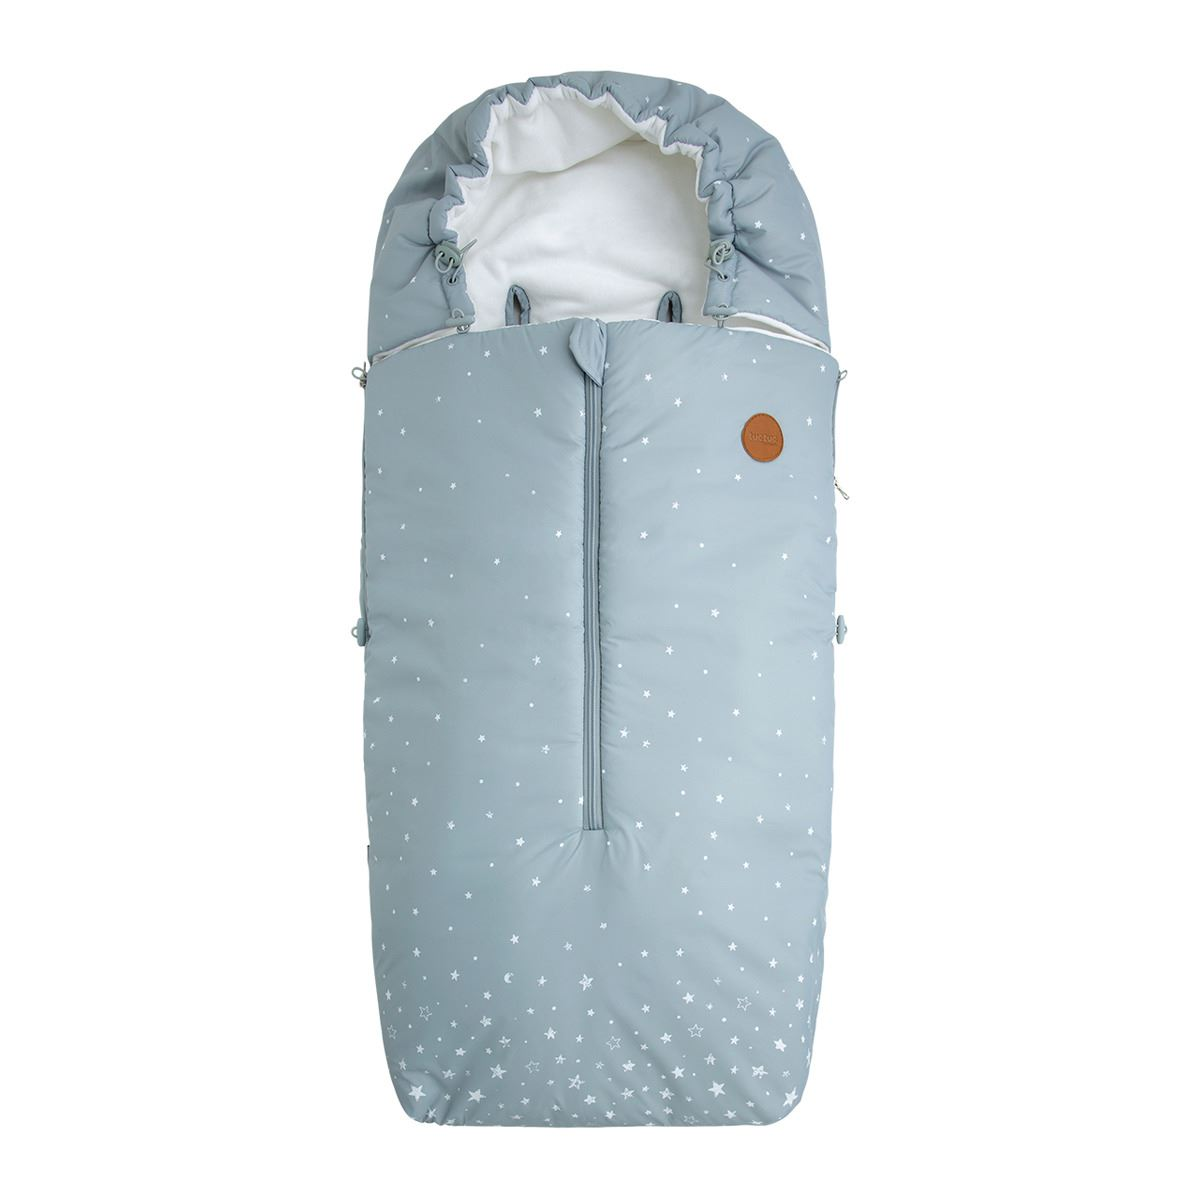 Saco Silla Weekend Constellation Gris Tuc Tuc